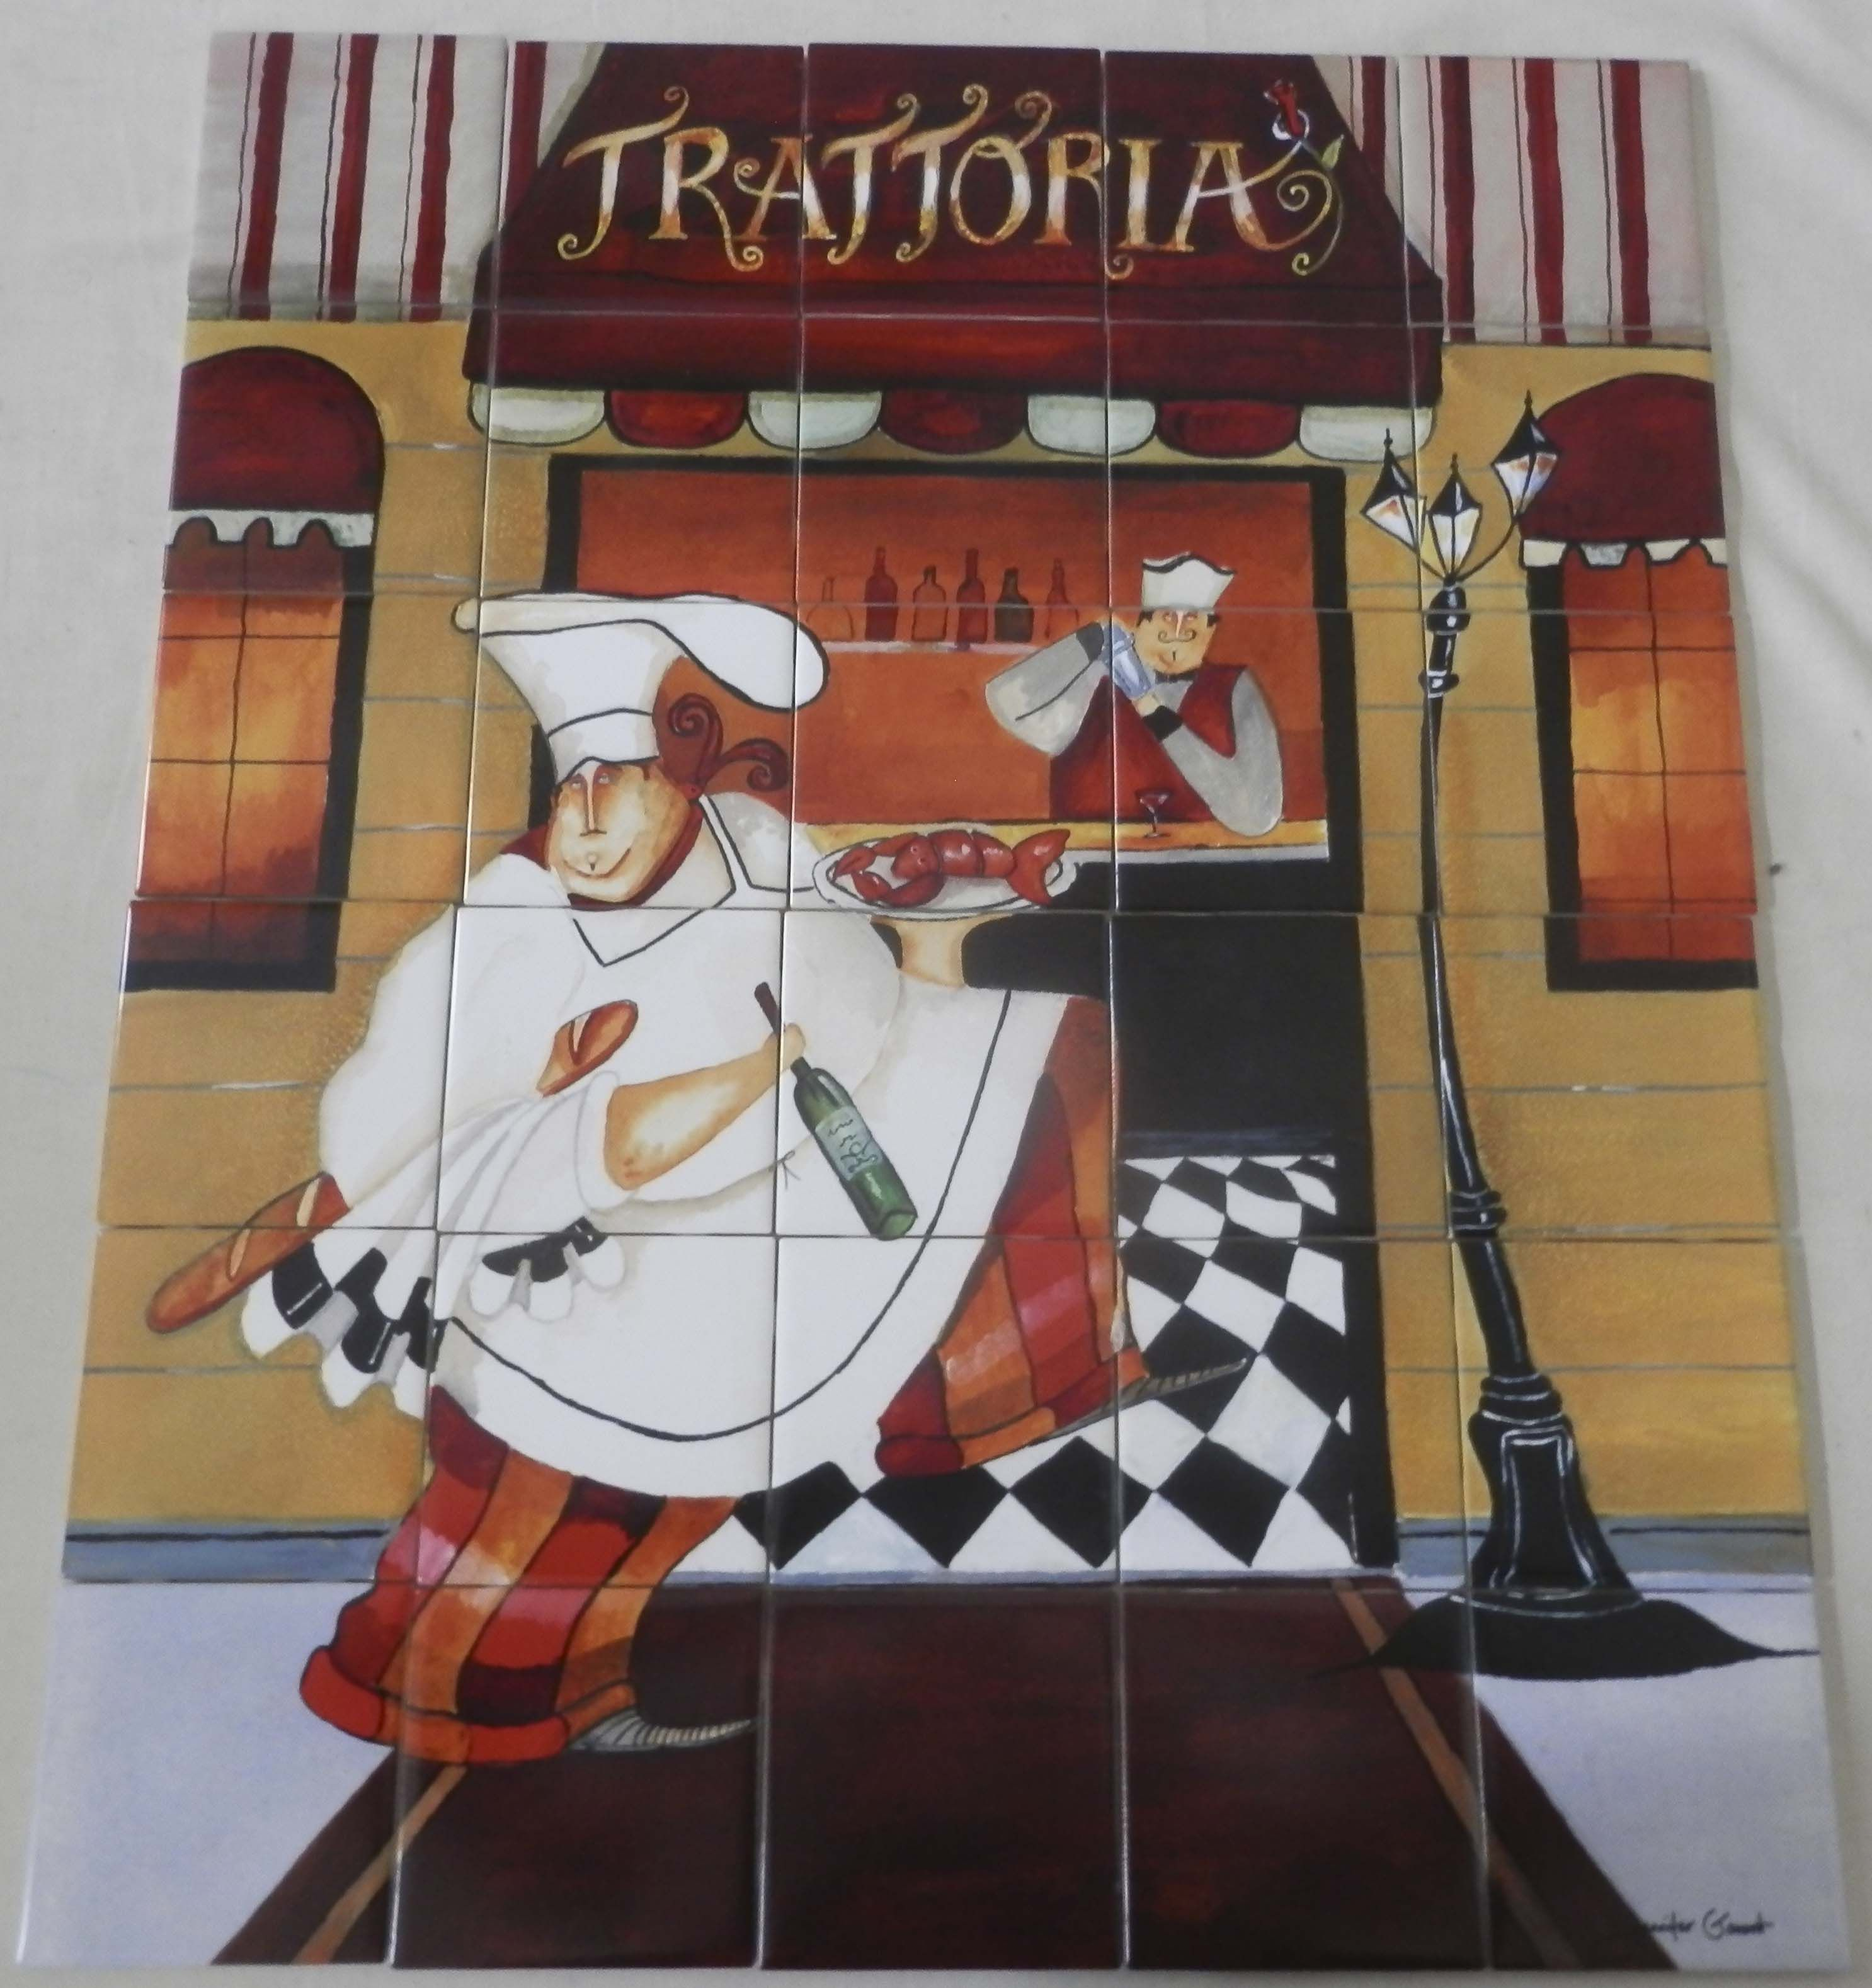 Decorative Wall Tile Murals Trattoria  Jg  Tile Mural Our Decorative Tiles Of Chefs Are